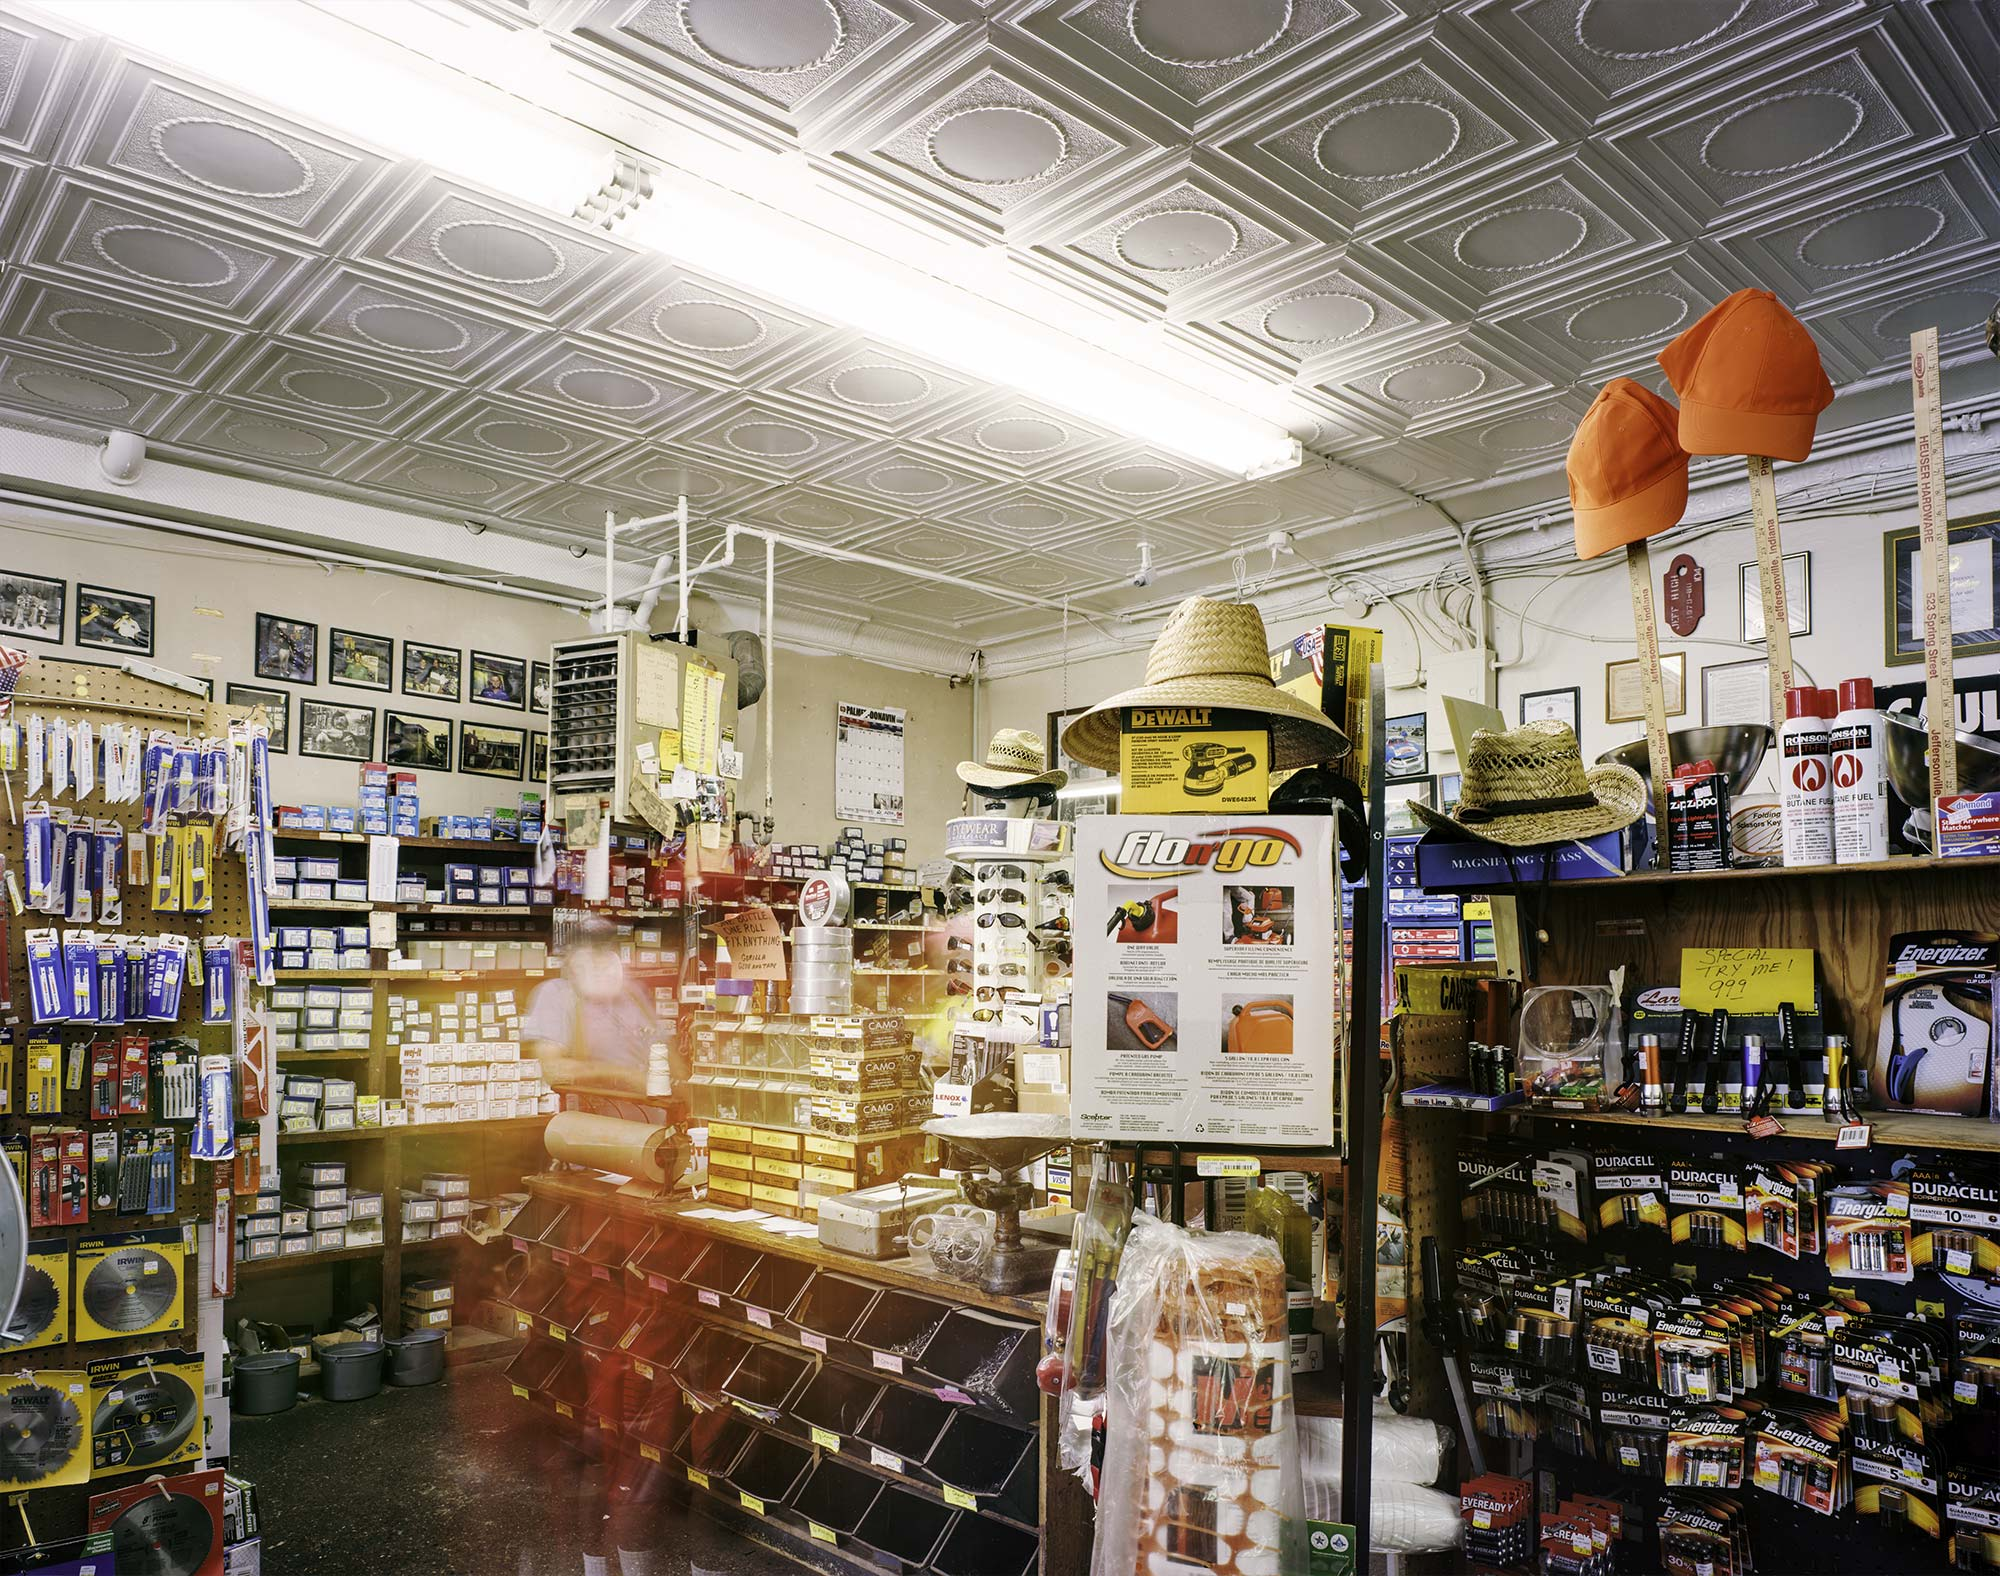 """  Heuser Hardware"" by Charles Mintz, 32 x 40in, Inkjet Print From Scanned FIlm (2016), $1000 